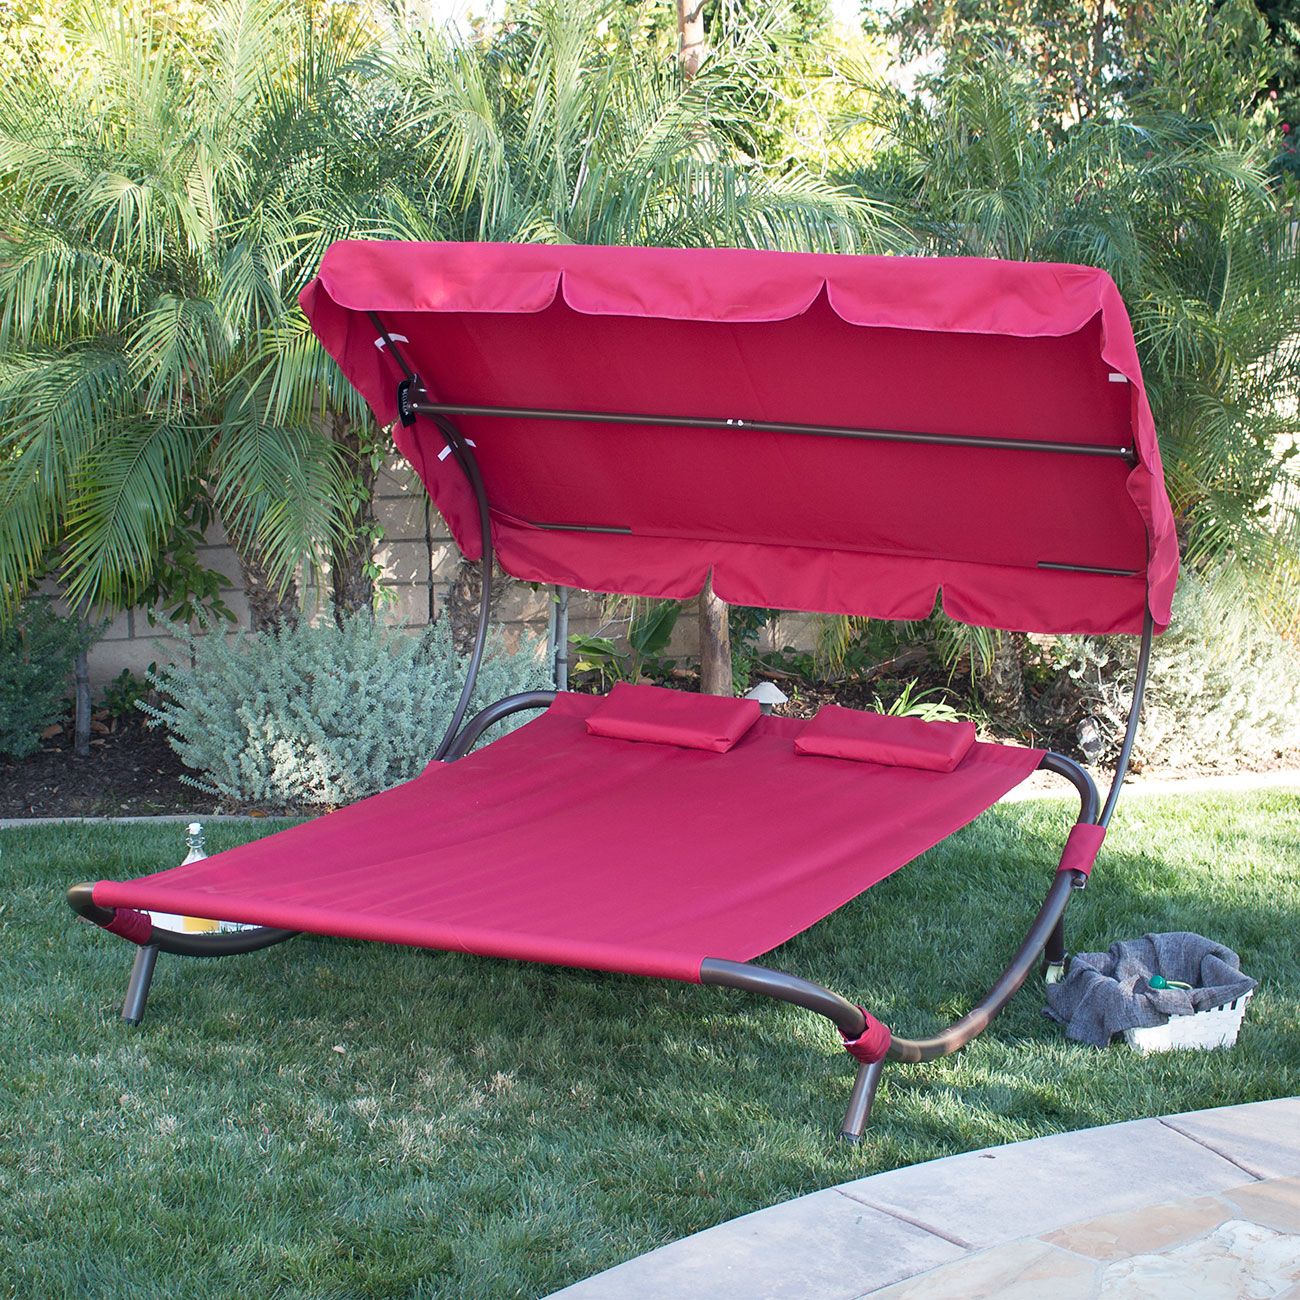 New Hammock Bed Lounger Double Chair Pool Chaise Lounge